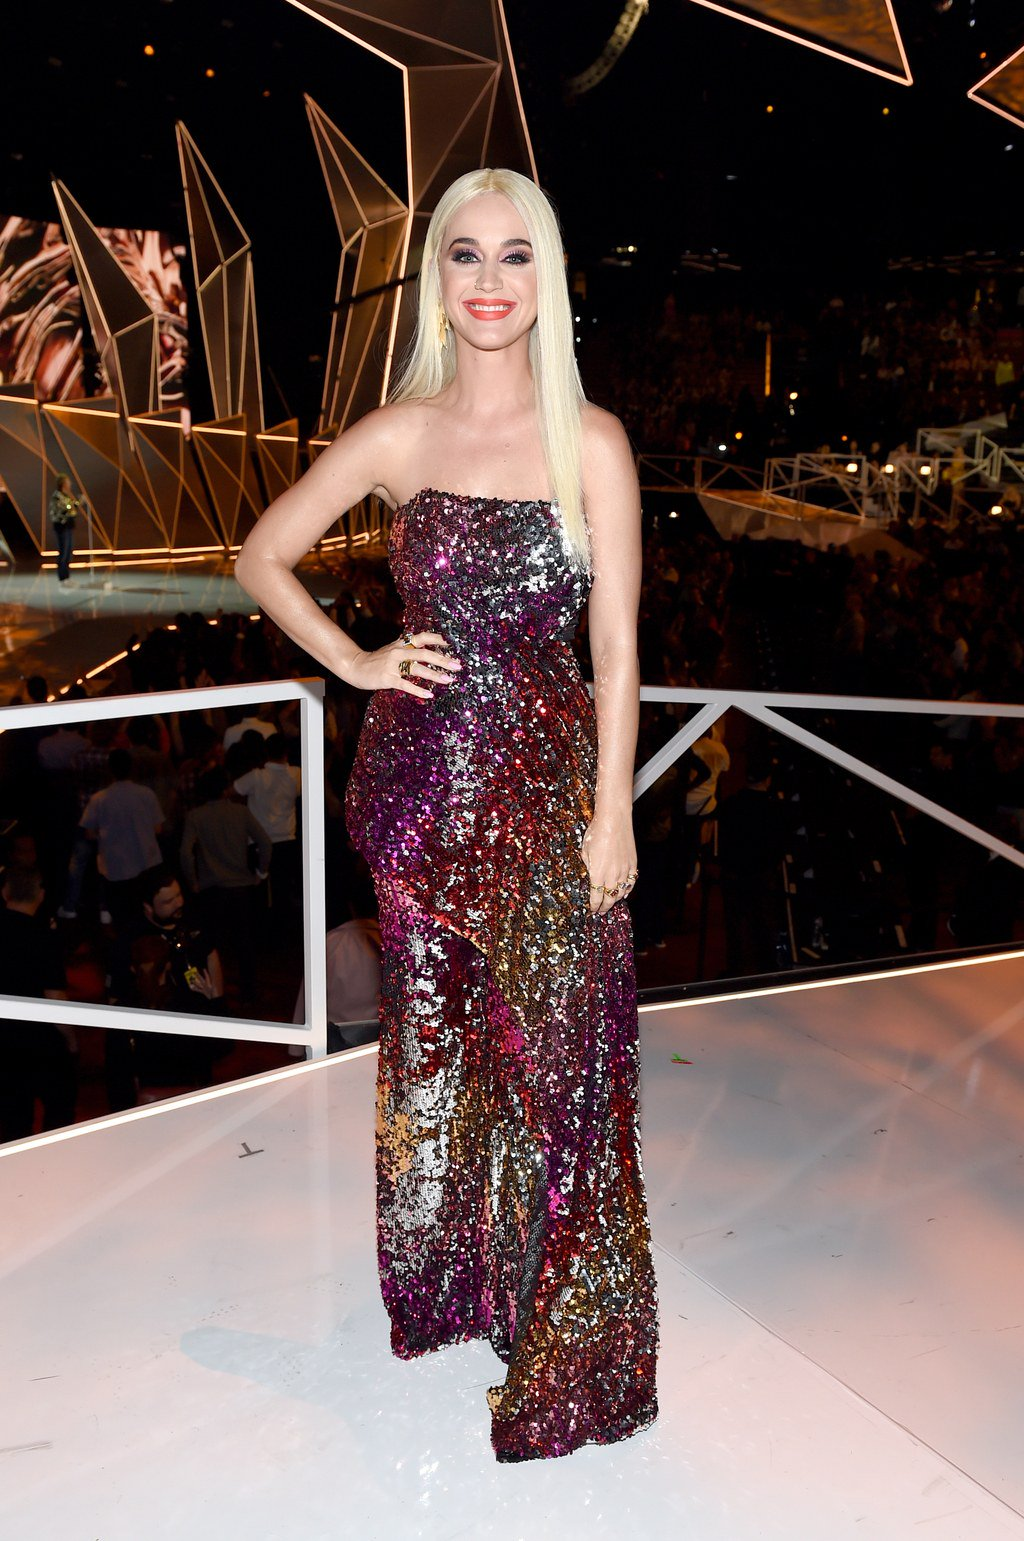 See the stars wearing #LFW designers at the #VMAs, including @katyperry in Halpern: https://t.co/8yohJSUbqf https://t.co/sVPafAwDqk